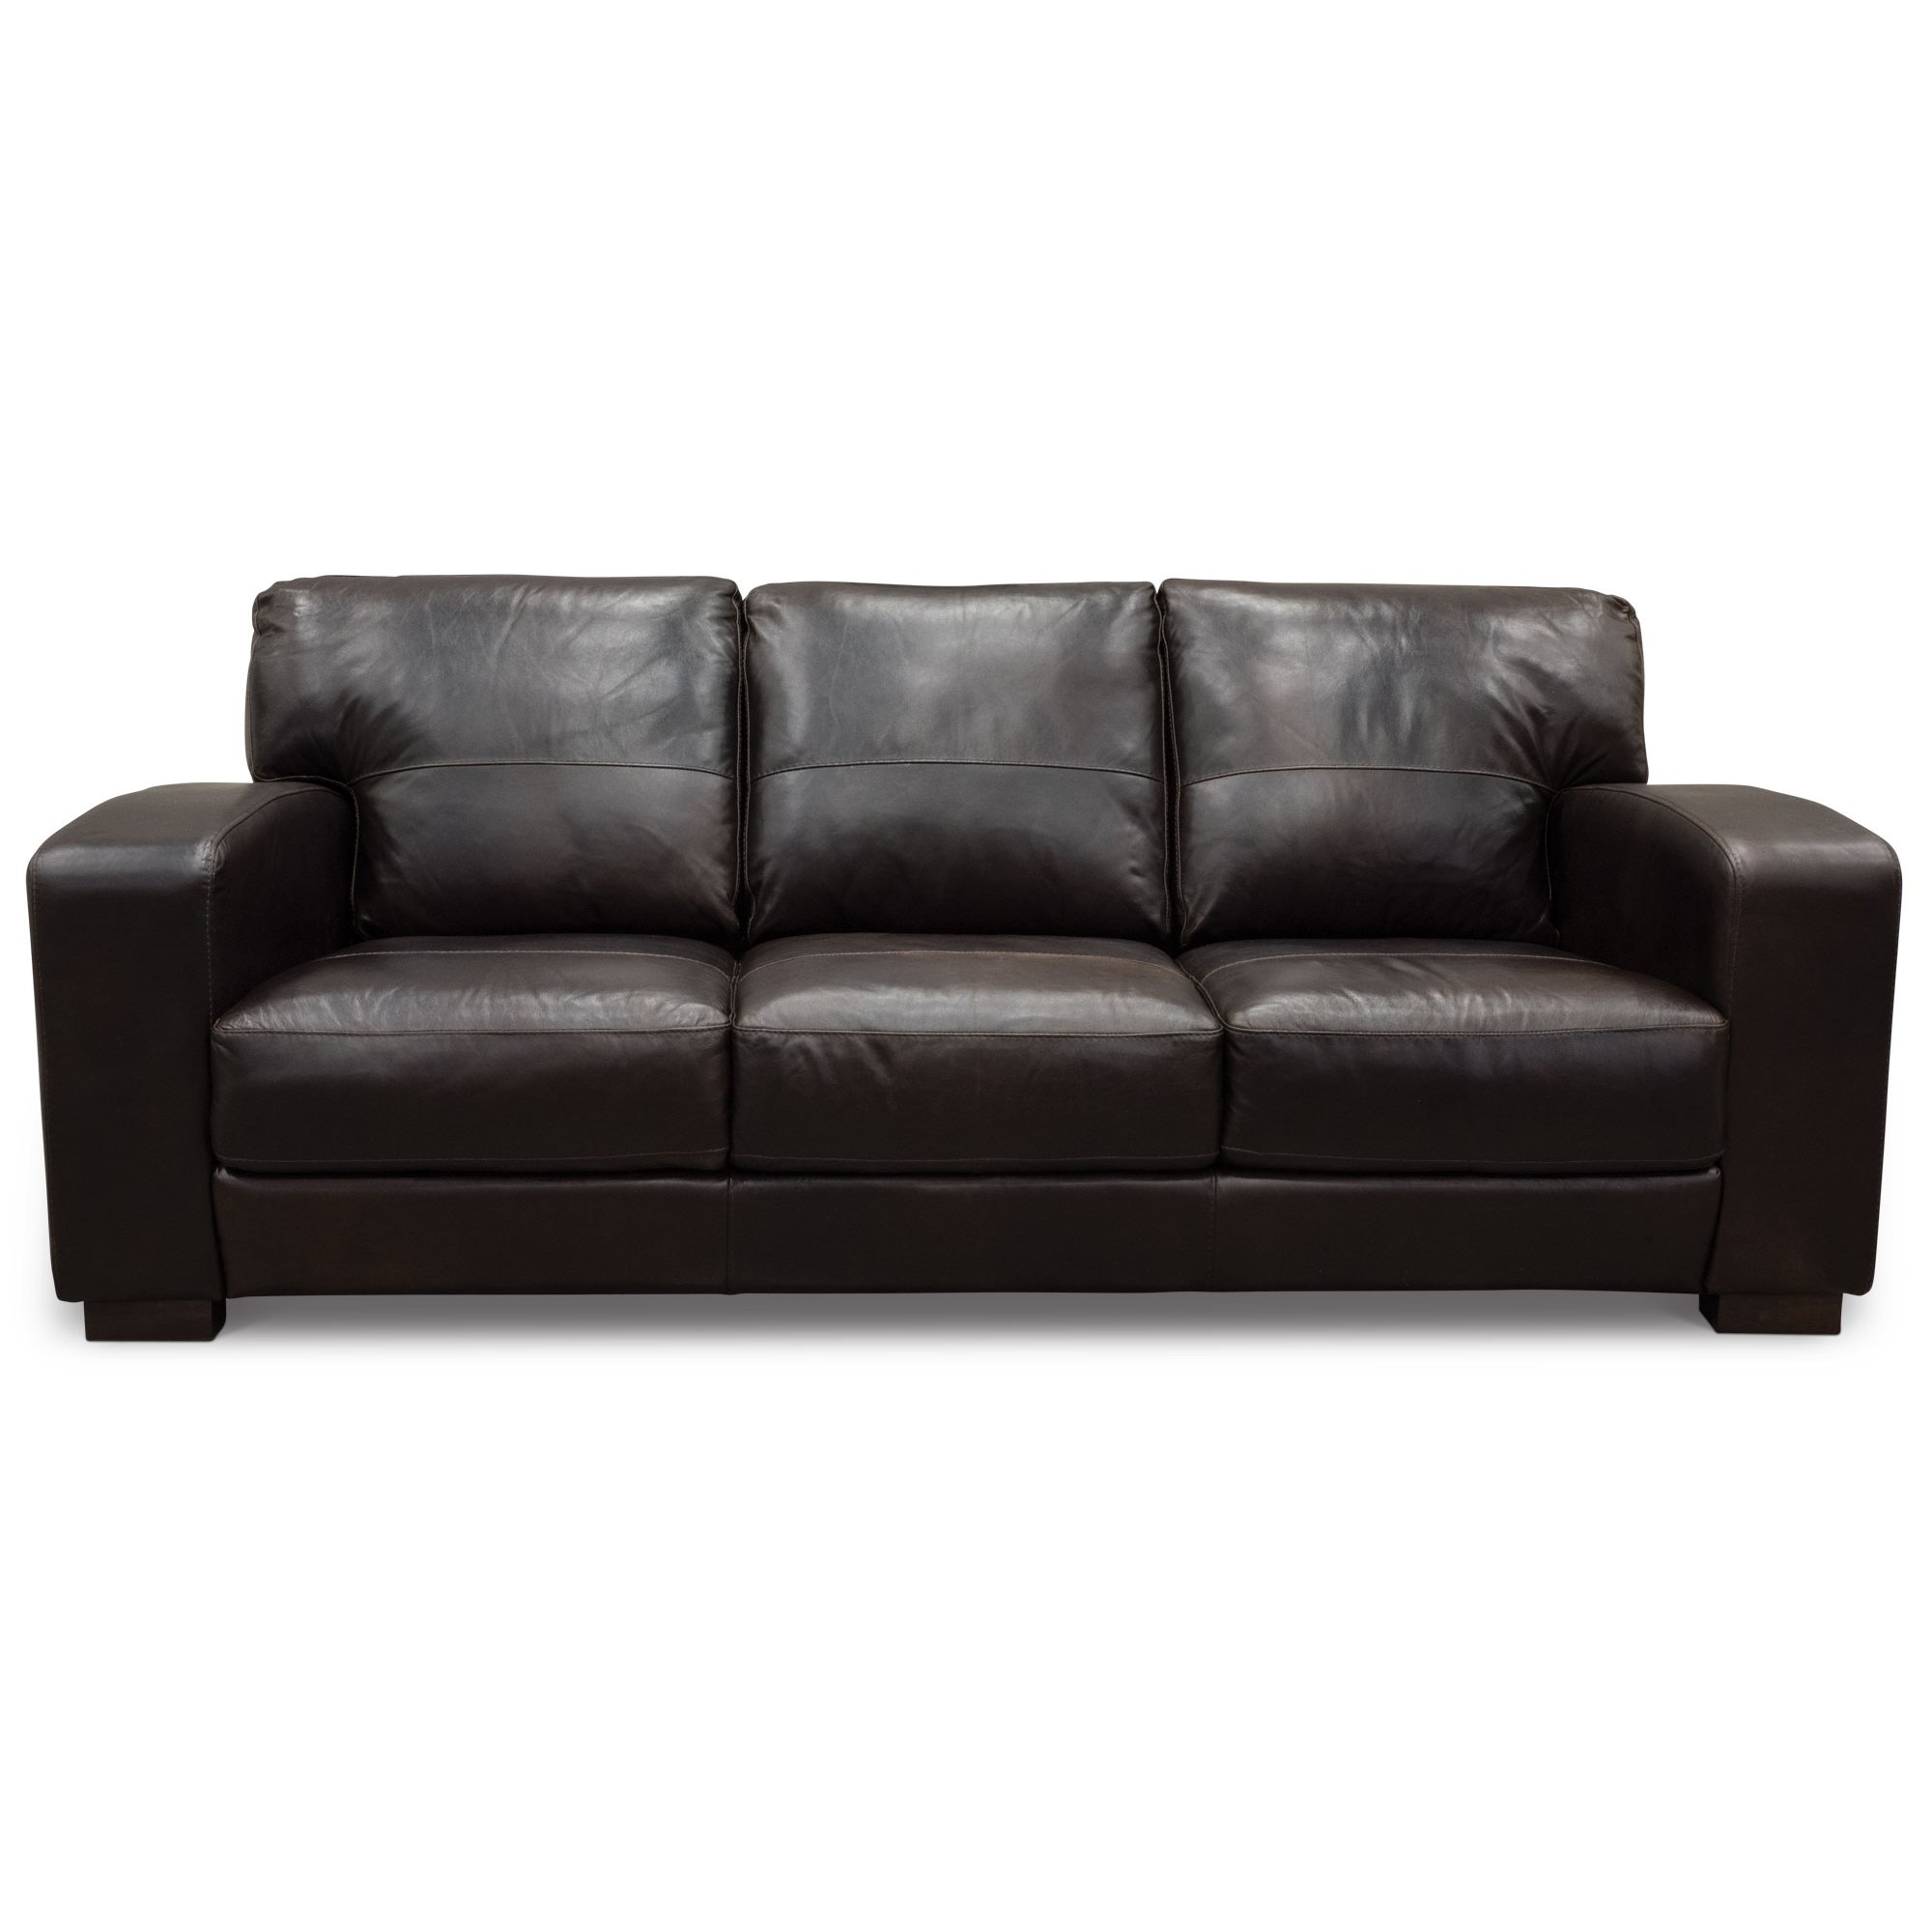 Casual Contemporary Brown Leather Sofa   Aspen | RC Willey Furniture Store